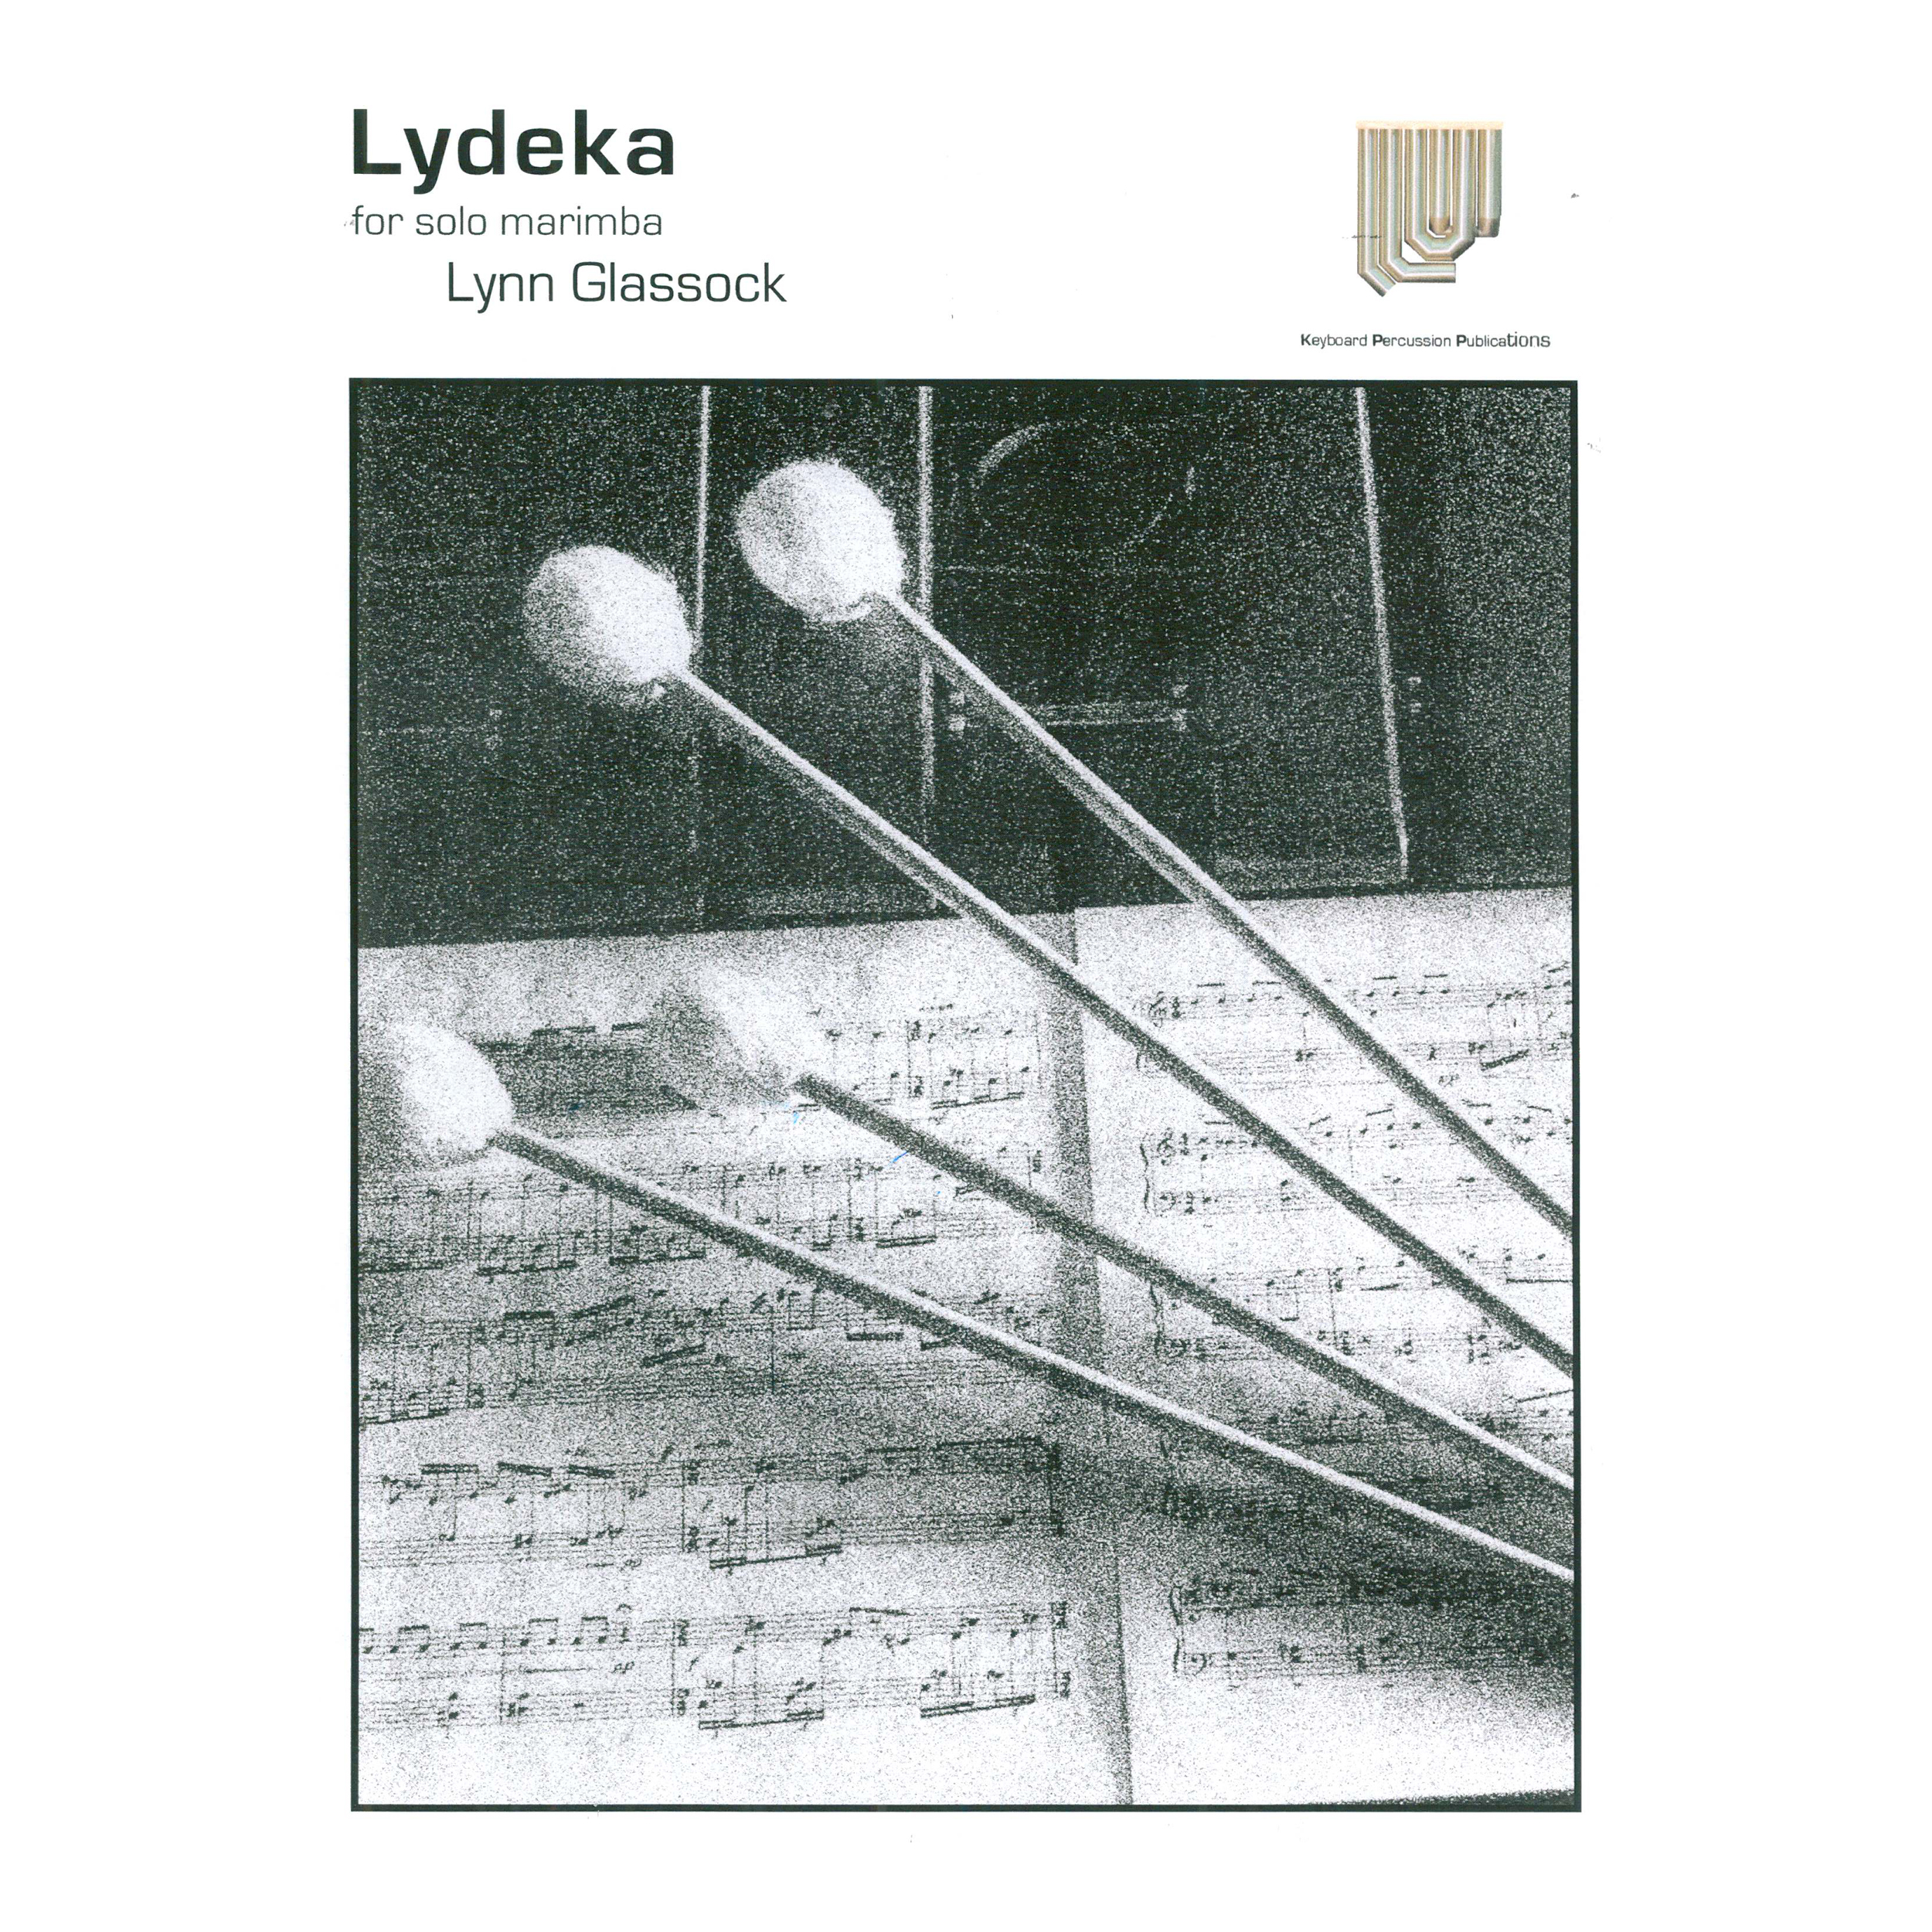 Lydeka by Lynn Glassock